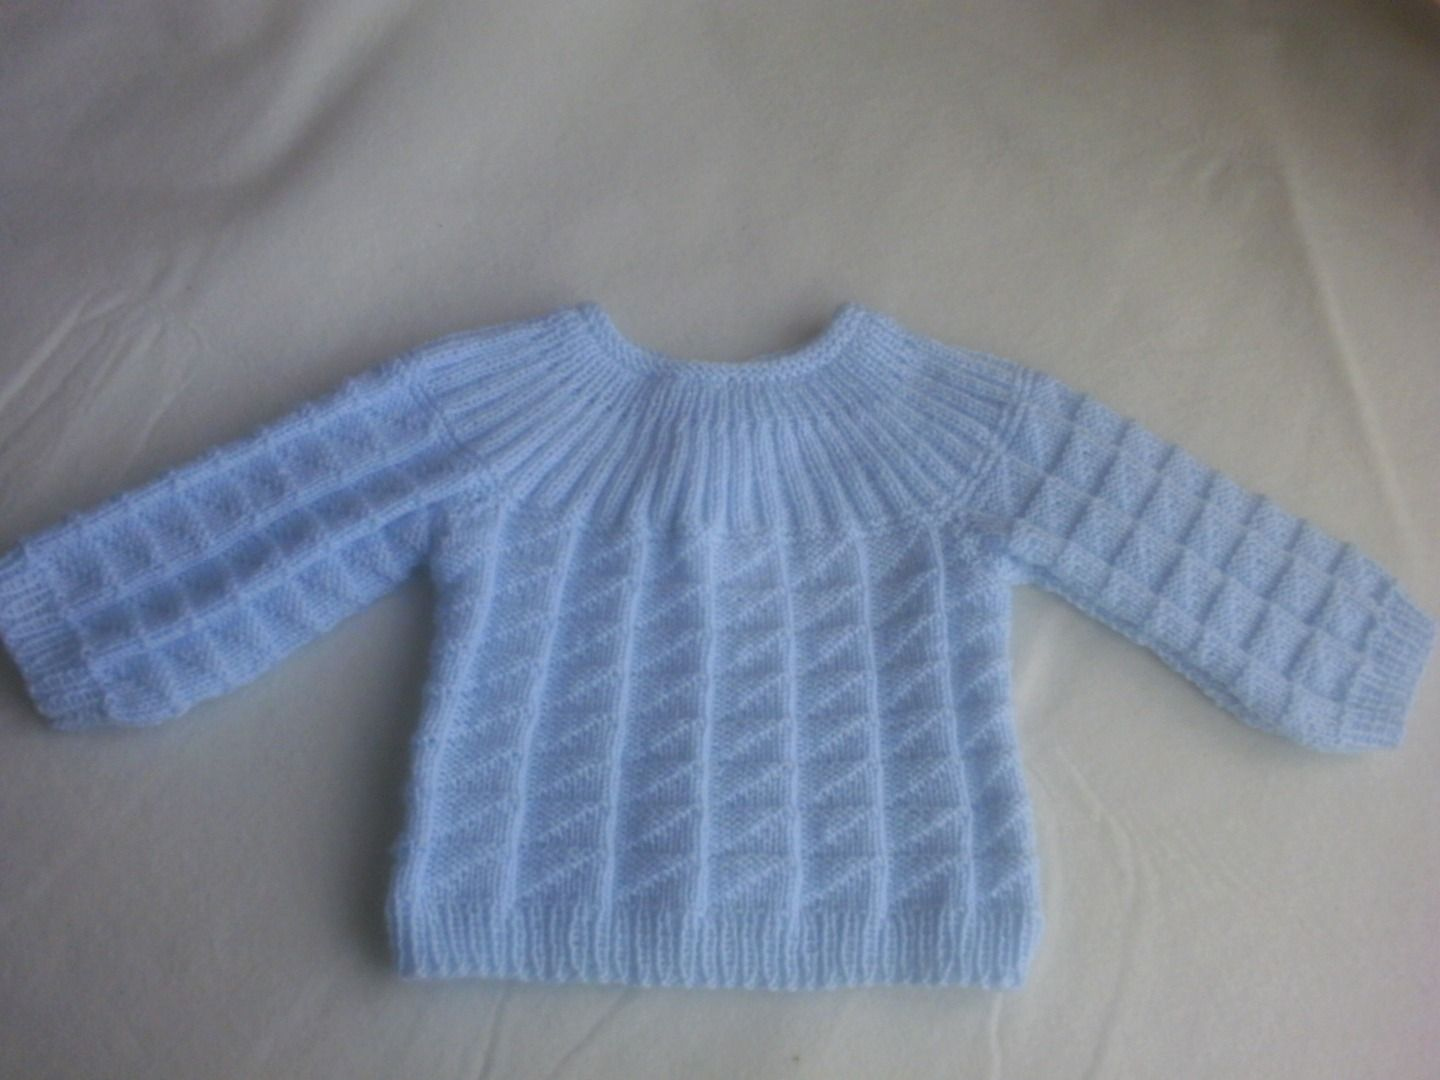 Brassi re top down jersey 3 mois photo de tricot basique bigmammy en travail tricoter - Tricot cote 1 1 ...